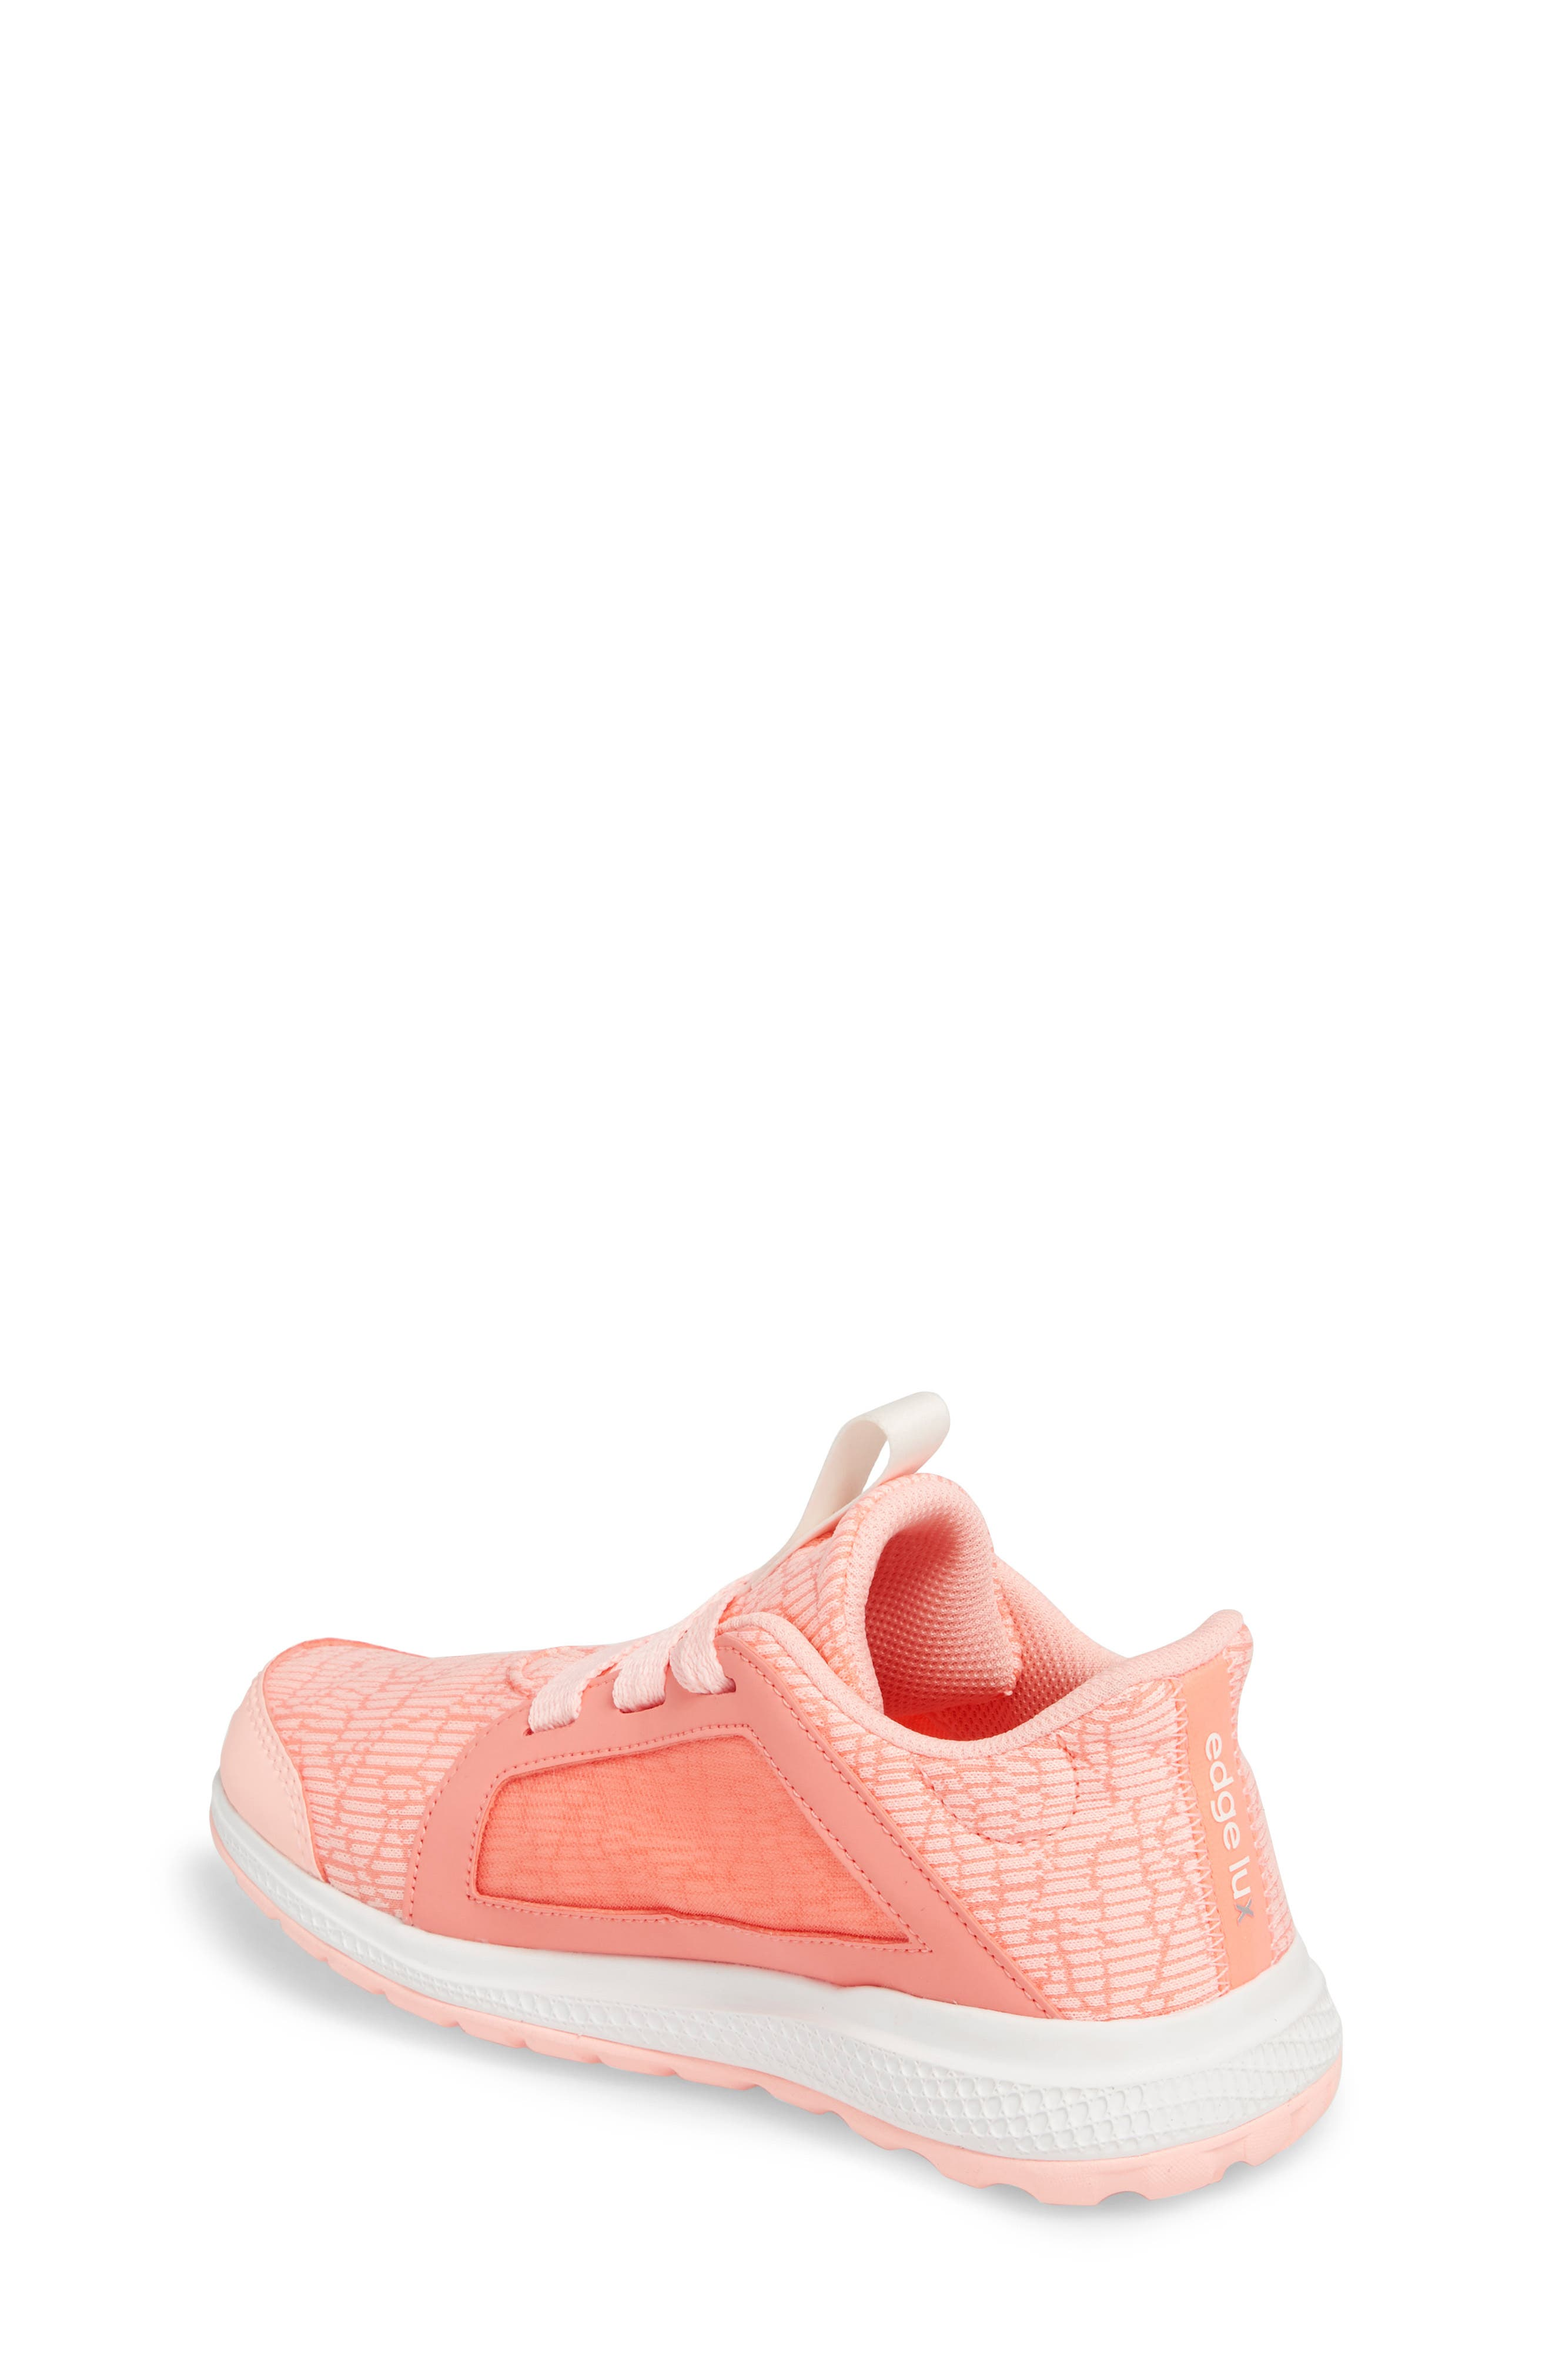 Edge Lux Running Shoe,                             Alternate thumbnail 2, color,                             CHALK CORAL/ WHITE/ ORANGE